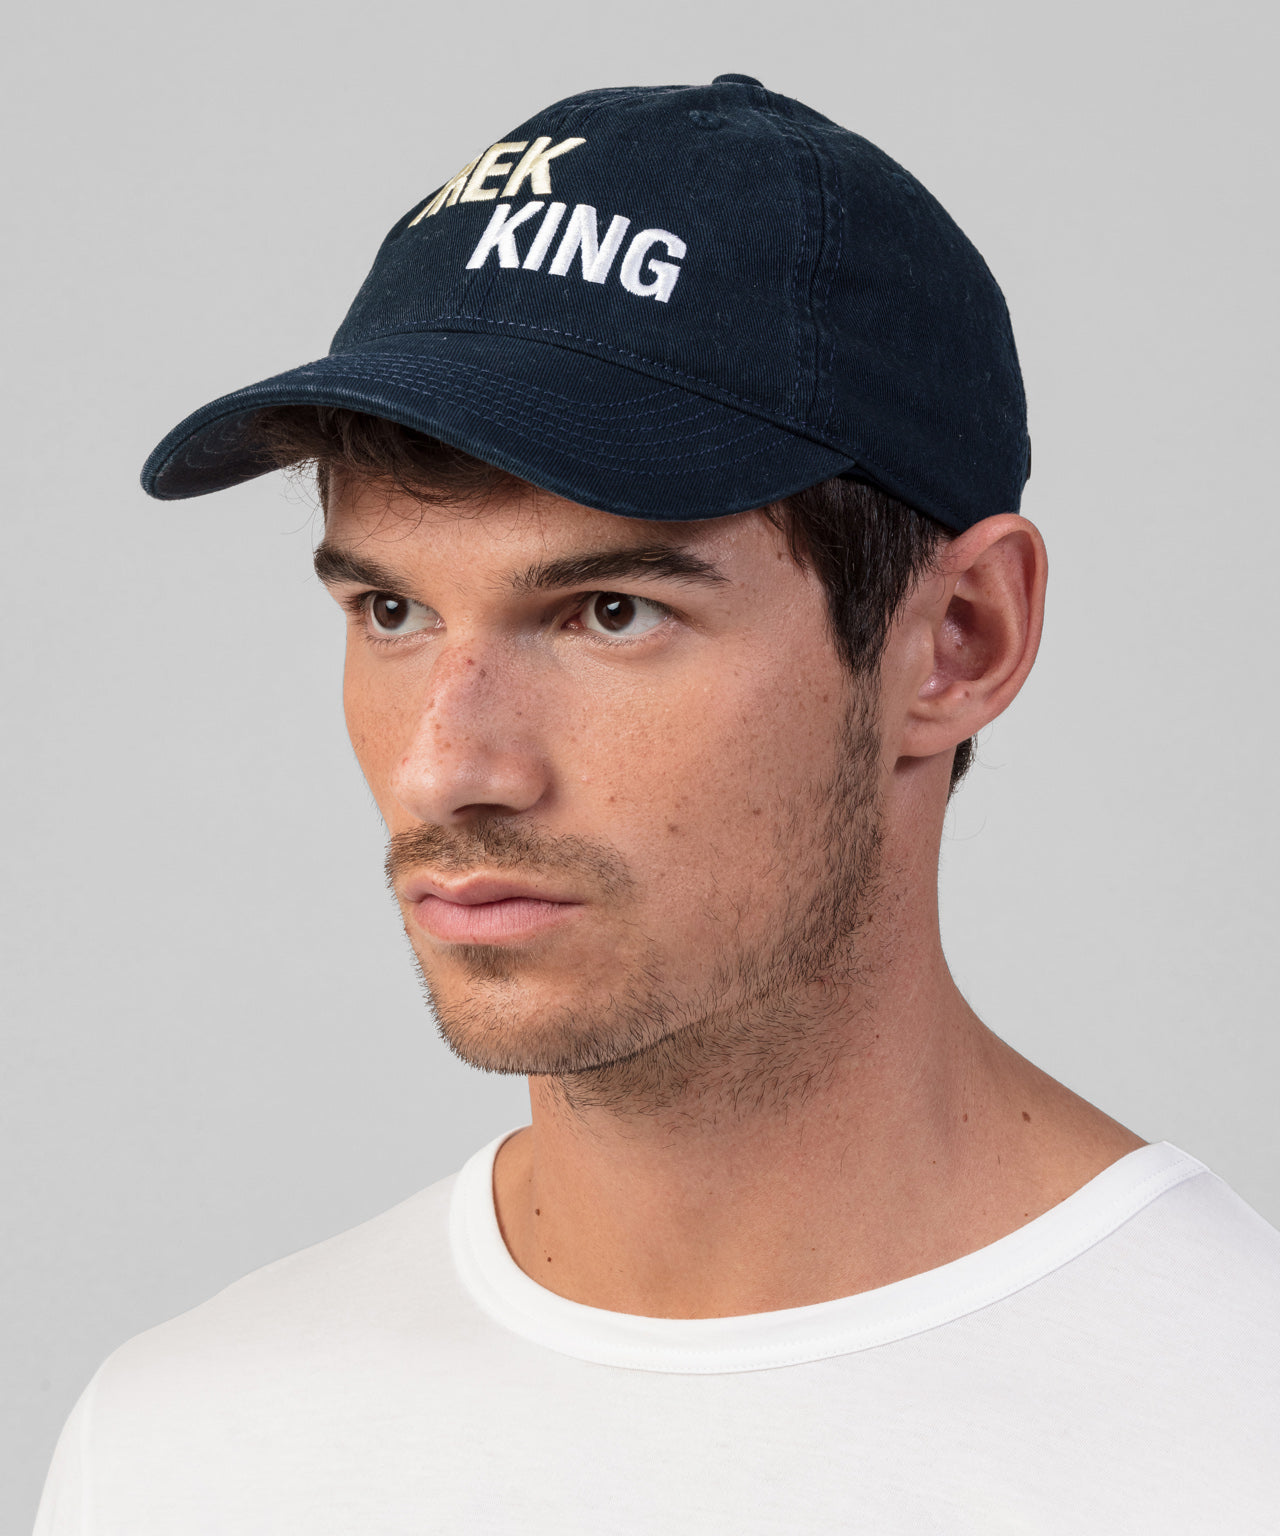 Coach Cap TREK KING - navy